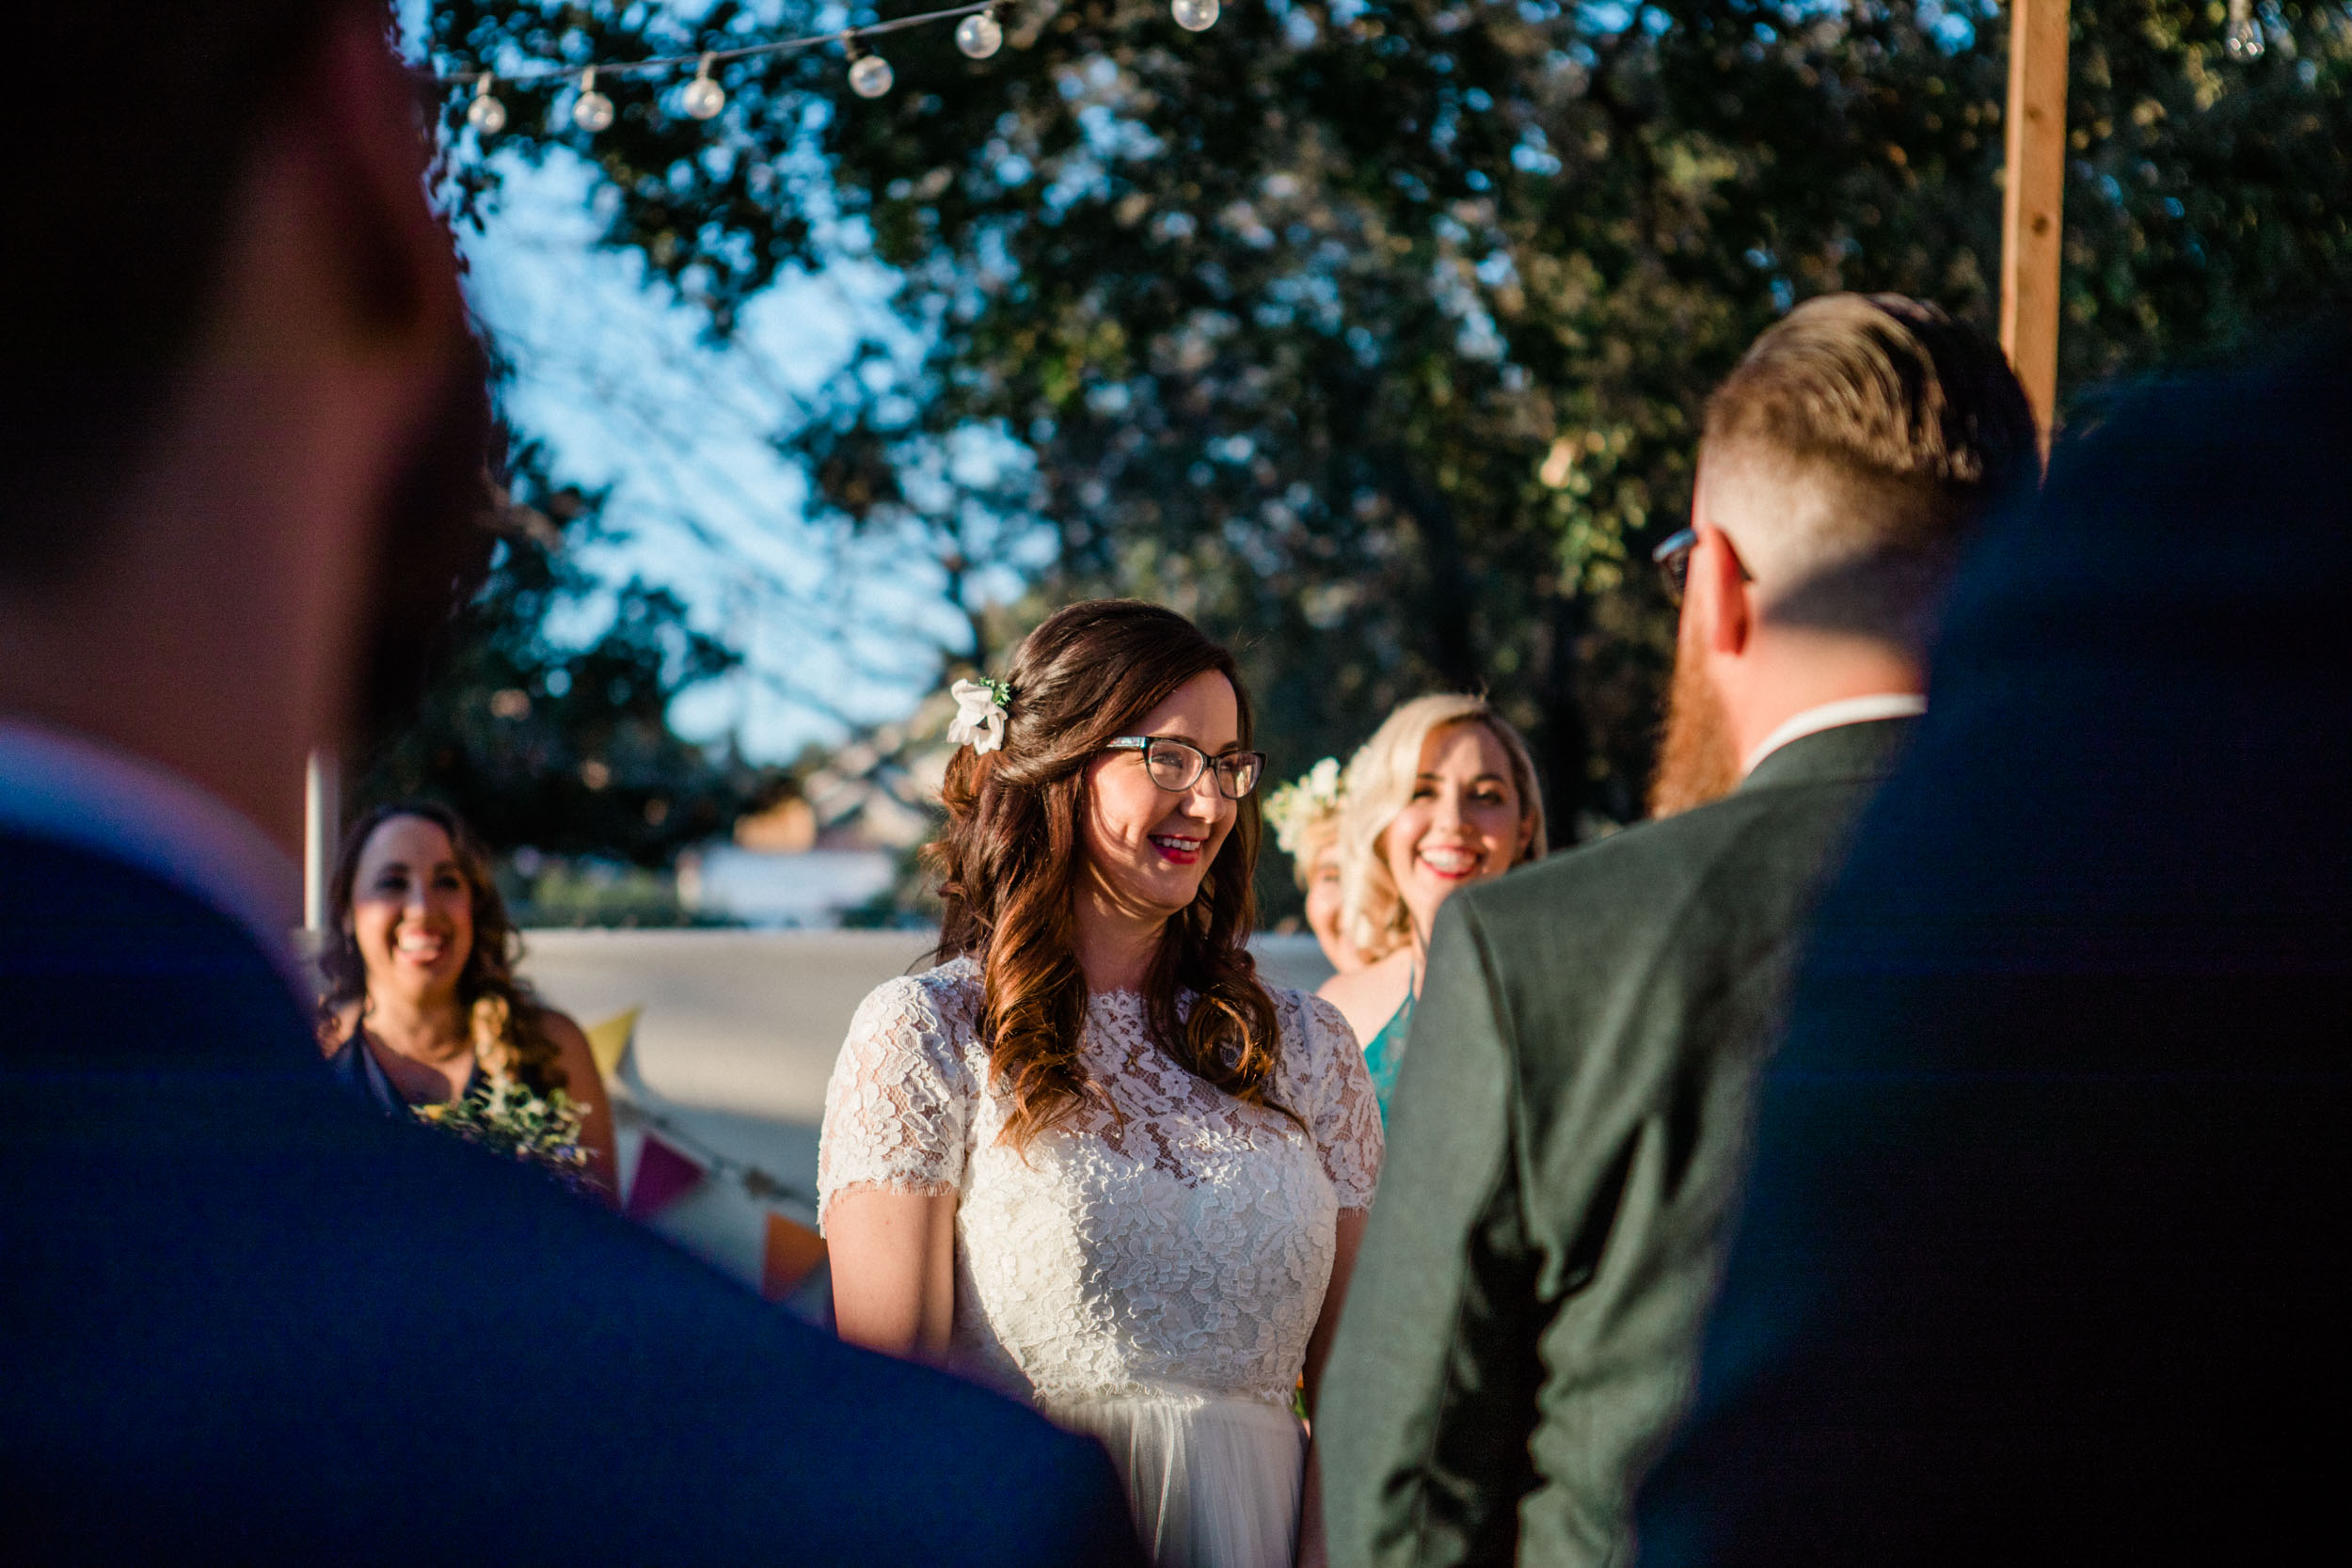 BKM-Photography-Highland-Park-Los-Angeles-Backyard-DIY-Wedding-0096.jpg